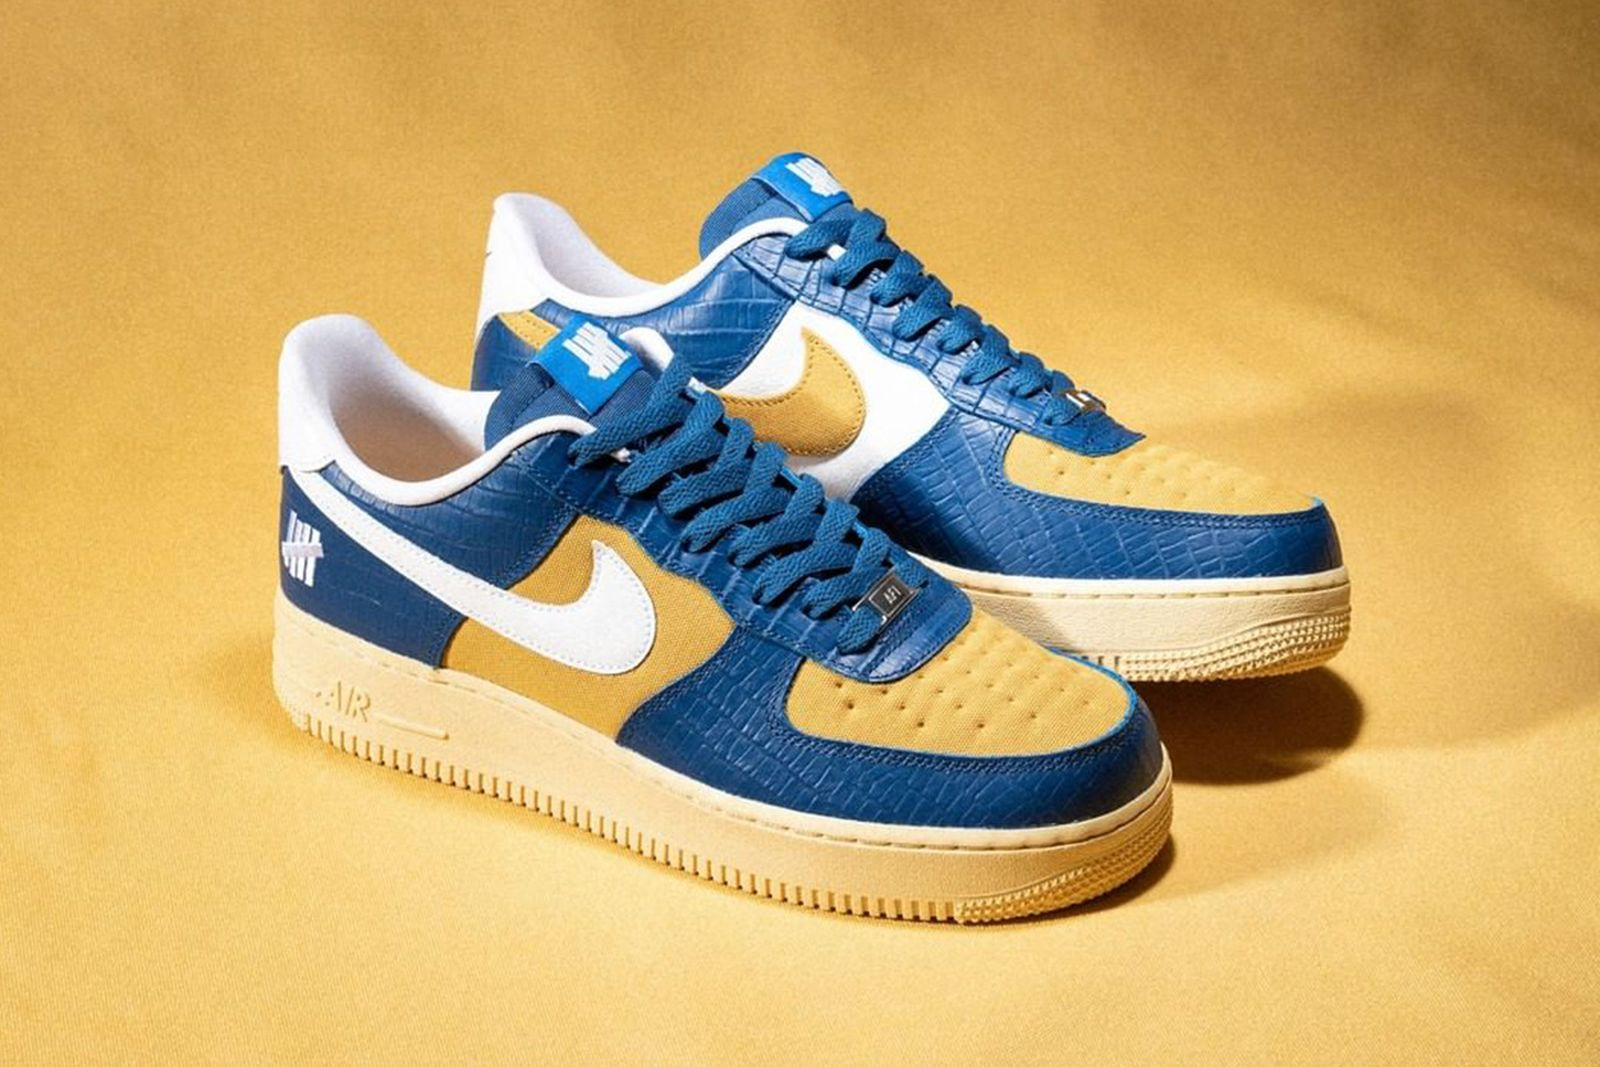 undefeated-nike-air-force-1-low-ballistic-release-date-price-05